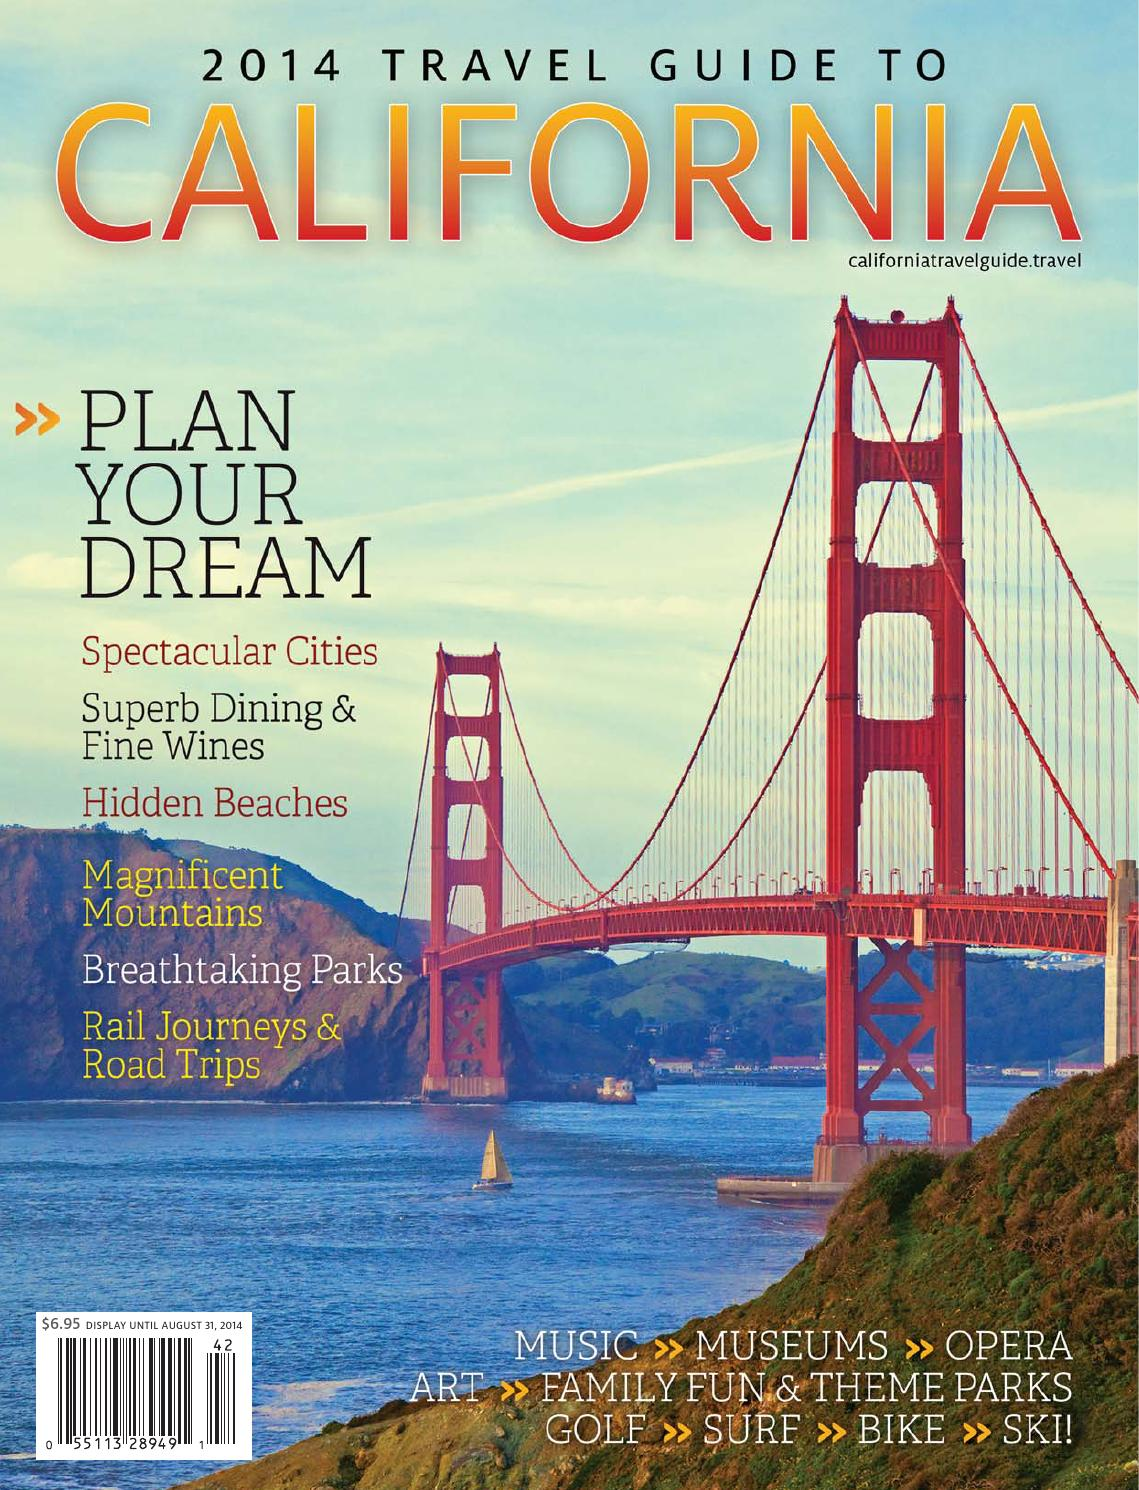 2014 travel guide to california by markintoshdesign issuu rh issuu com Travel Brochure Route 66 Travel Guide